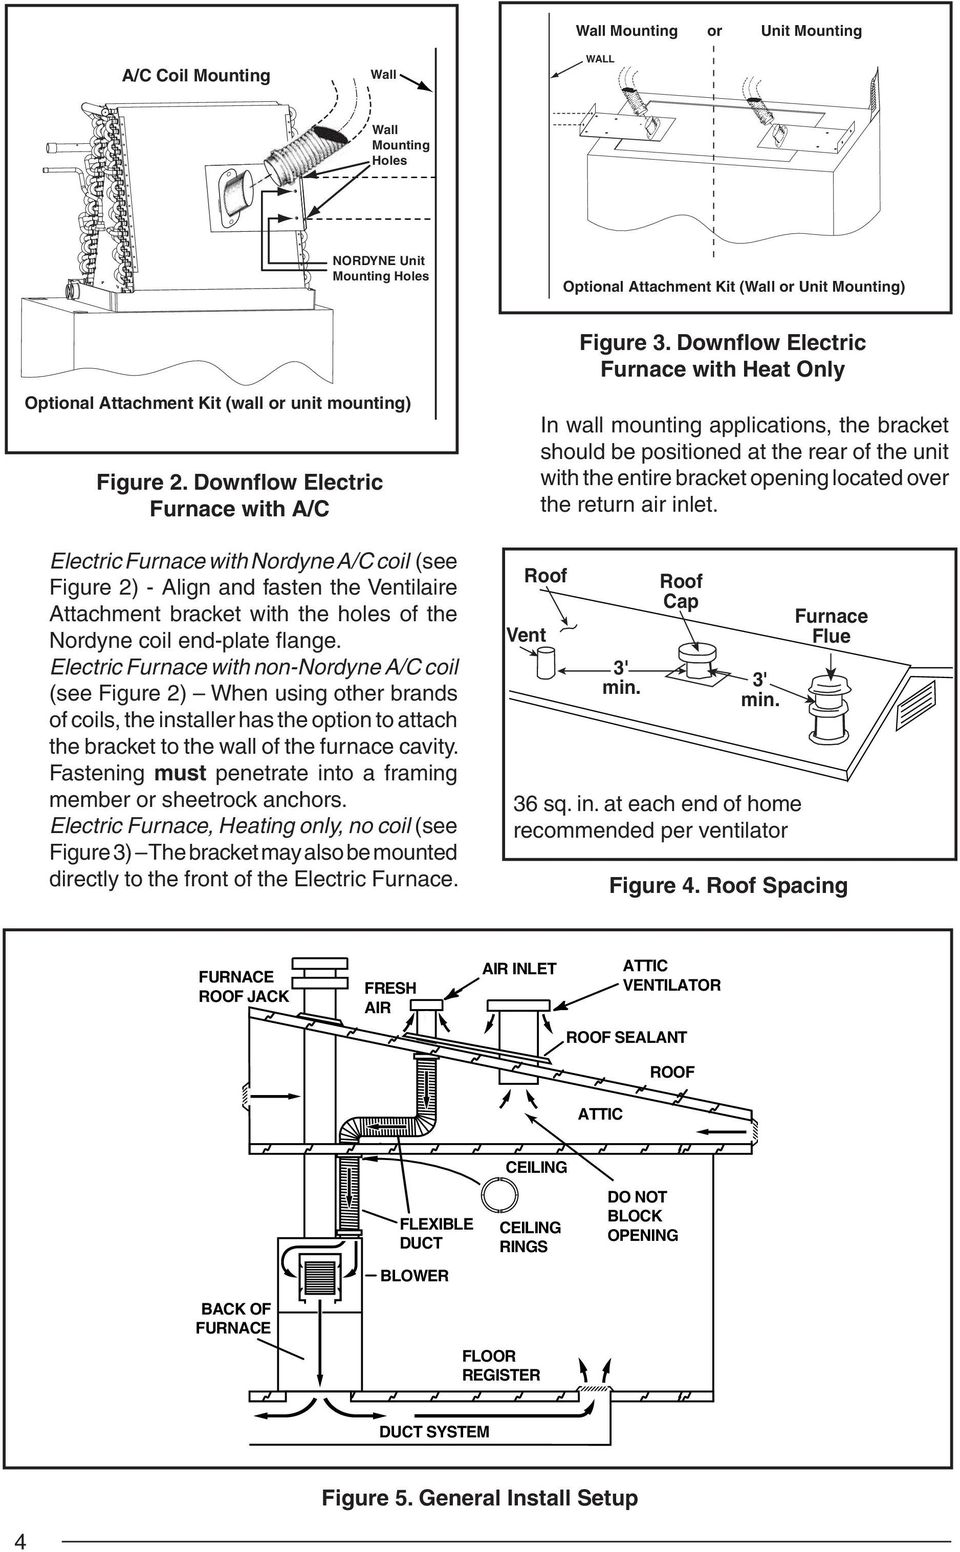 Downflow Electric Furnace with A/C Electric Furnace with Nordyne A/C coil (see Figure 2) - Align and fasten the Ventilaire Attachment bracket with the holes of the Nordyne coil end-plate fl ange.